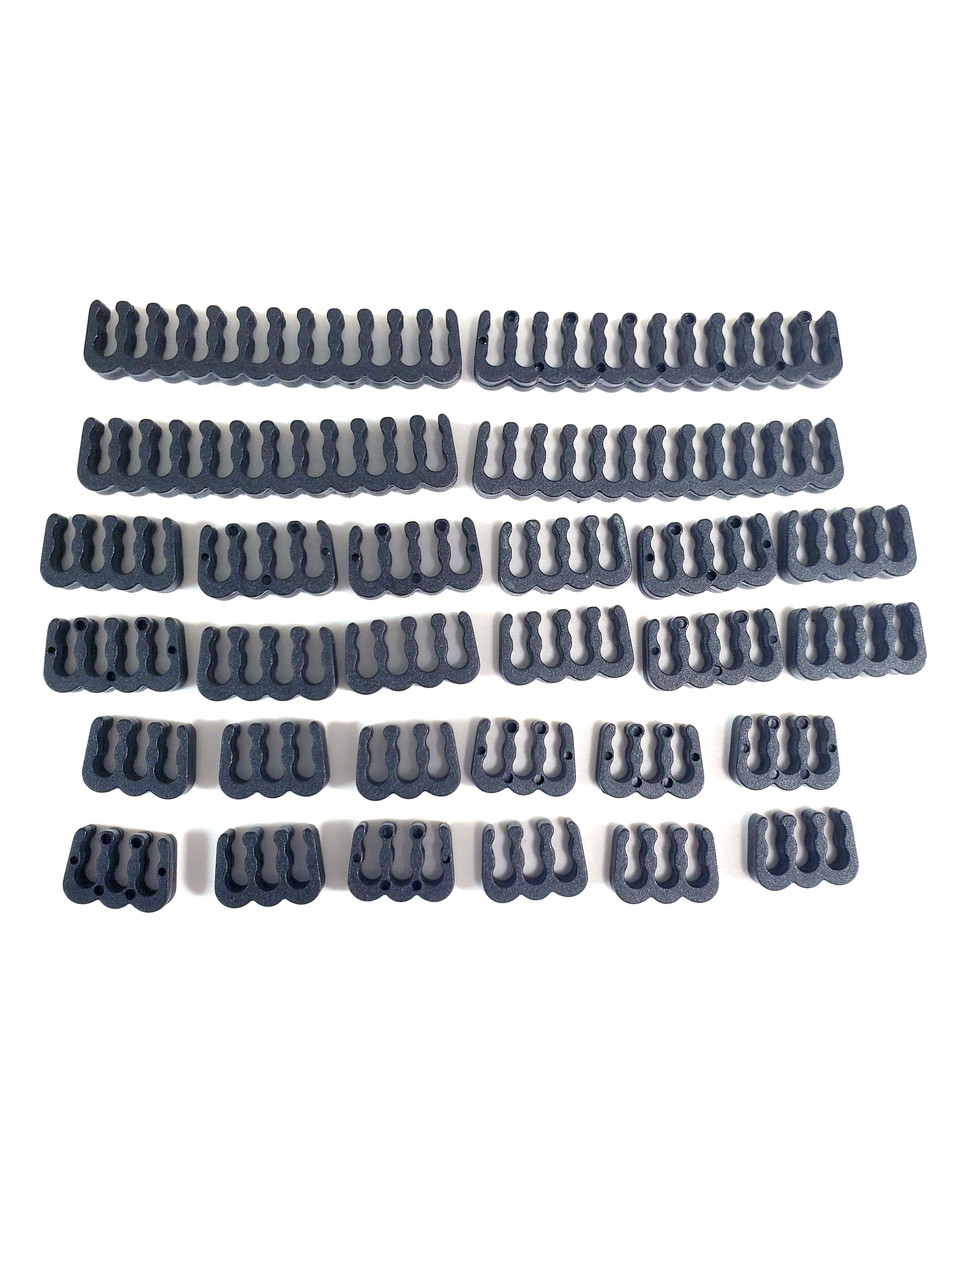 Micro Connectors 28 pcs Cable Combs Kit – Black (MSC-205BK)